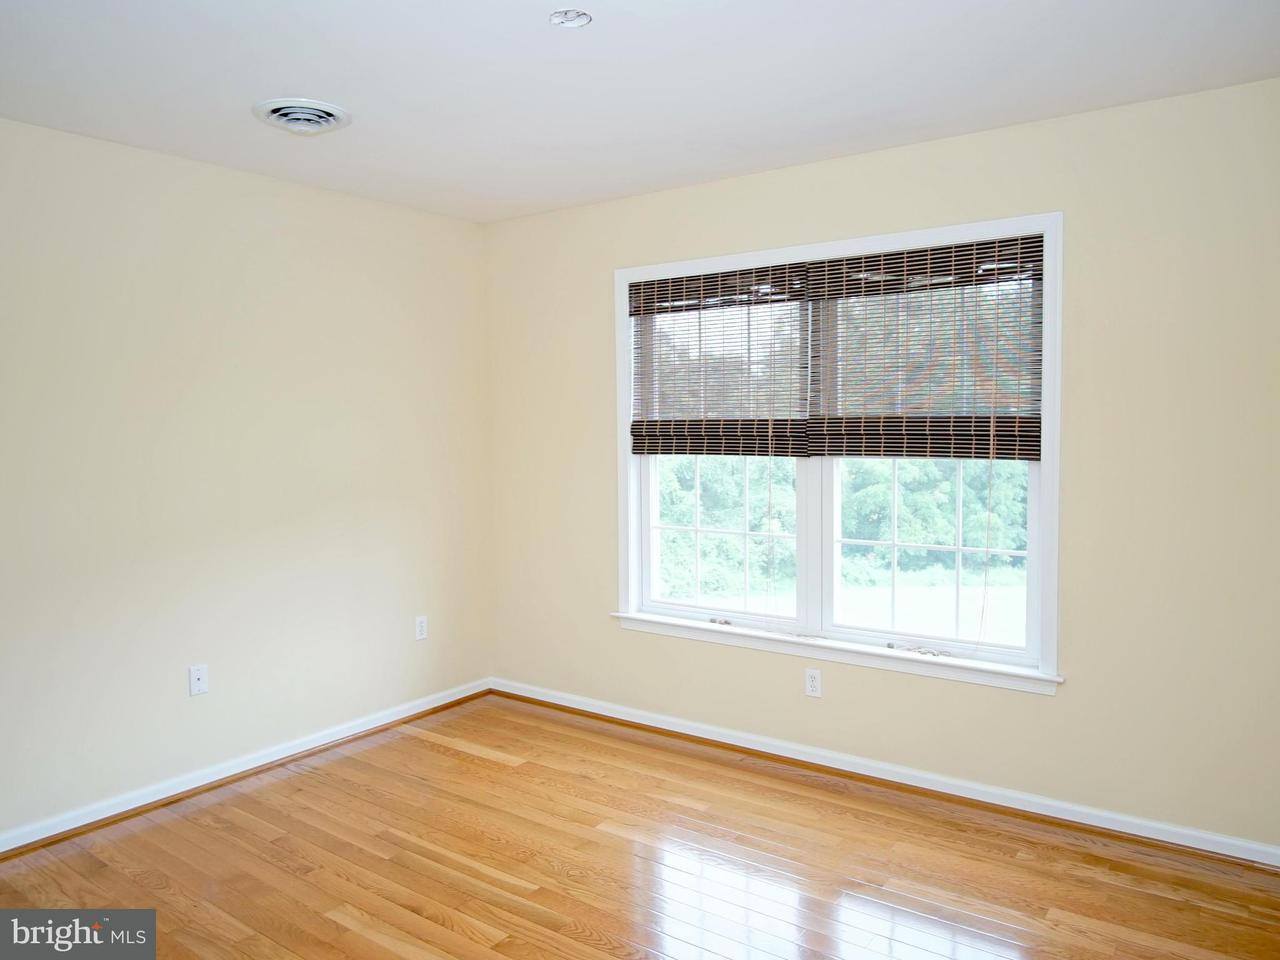 Additional photo for property listing at 6702 MILLIME Court 6702 MILLIME Court New Market, Maryland 21774 Estados Unidos